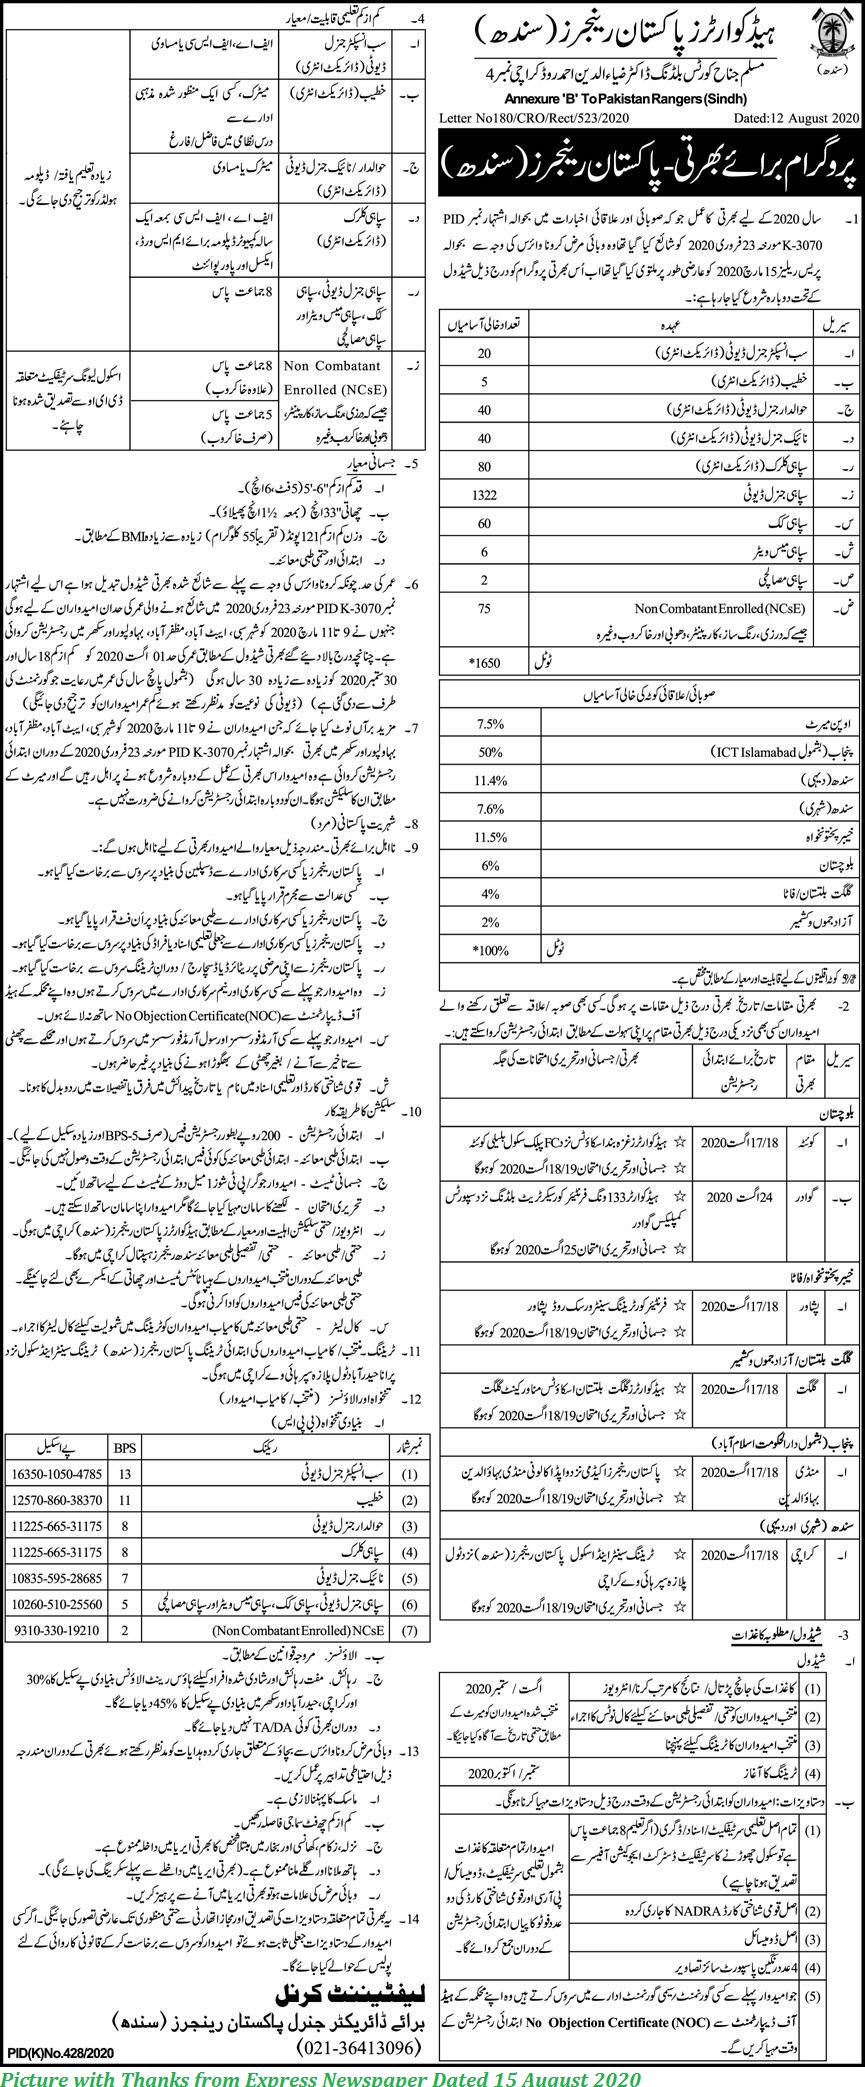 Pakistan Rangers Jobs 2020 - Latest Jobs in Paksitan Rangers Headquarter Sindh 1600+ Posts in Pakistan Rangers